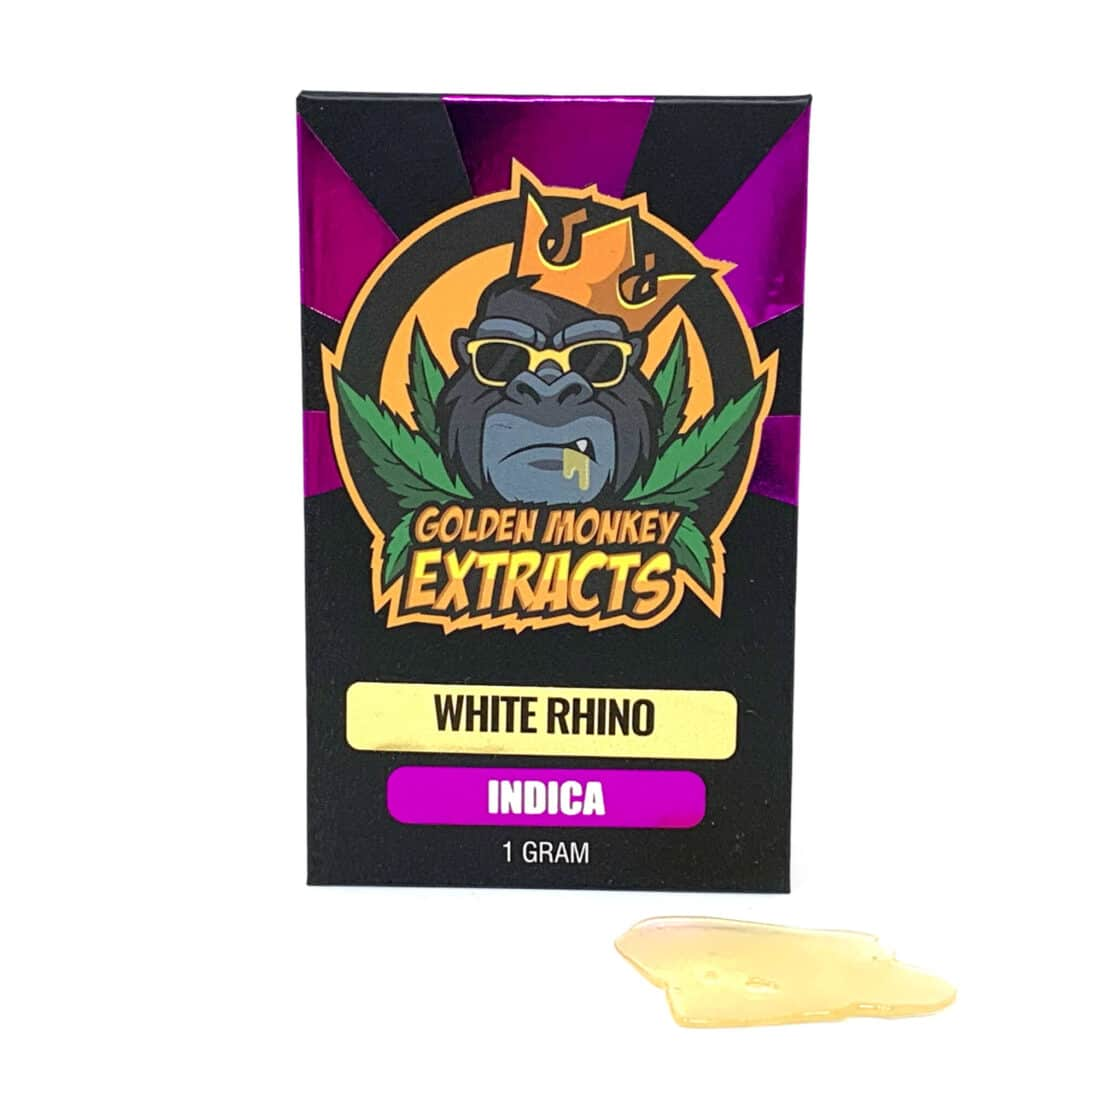 Golden Monkey Extracts Shatter White Rhino